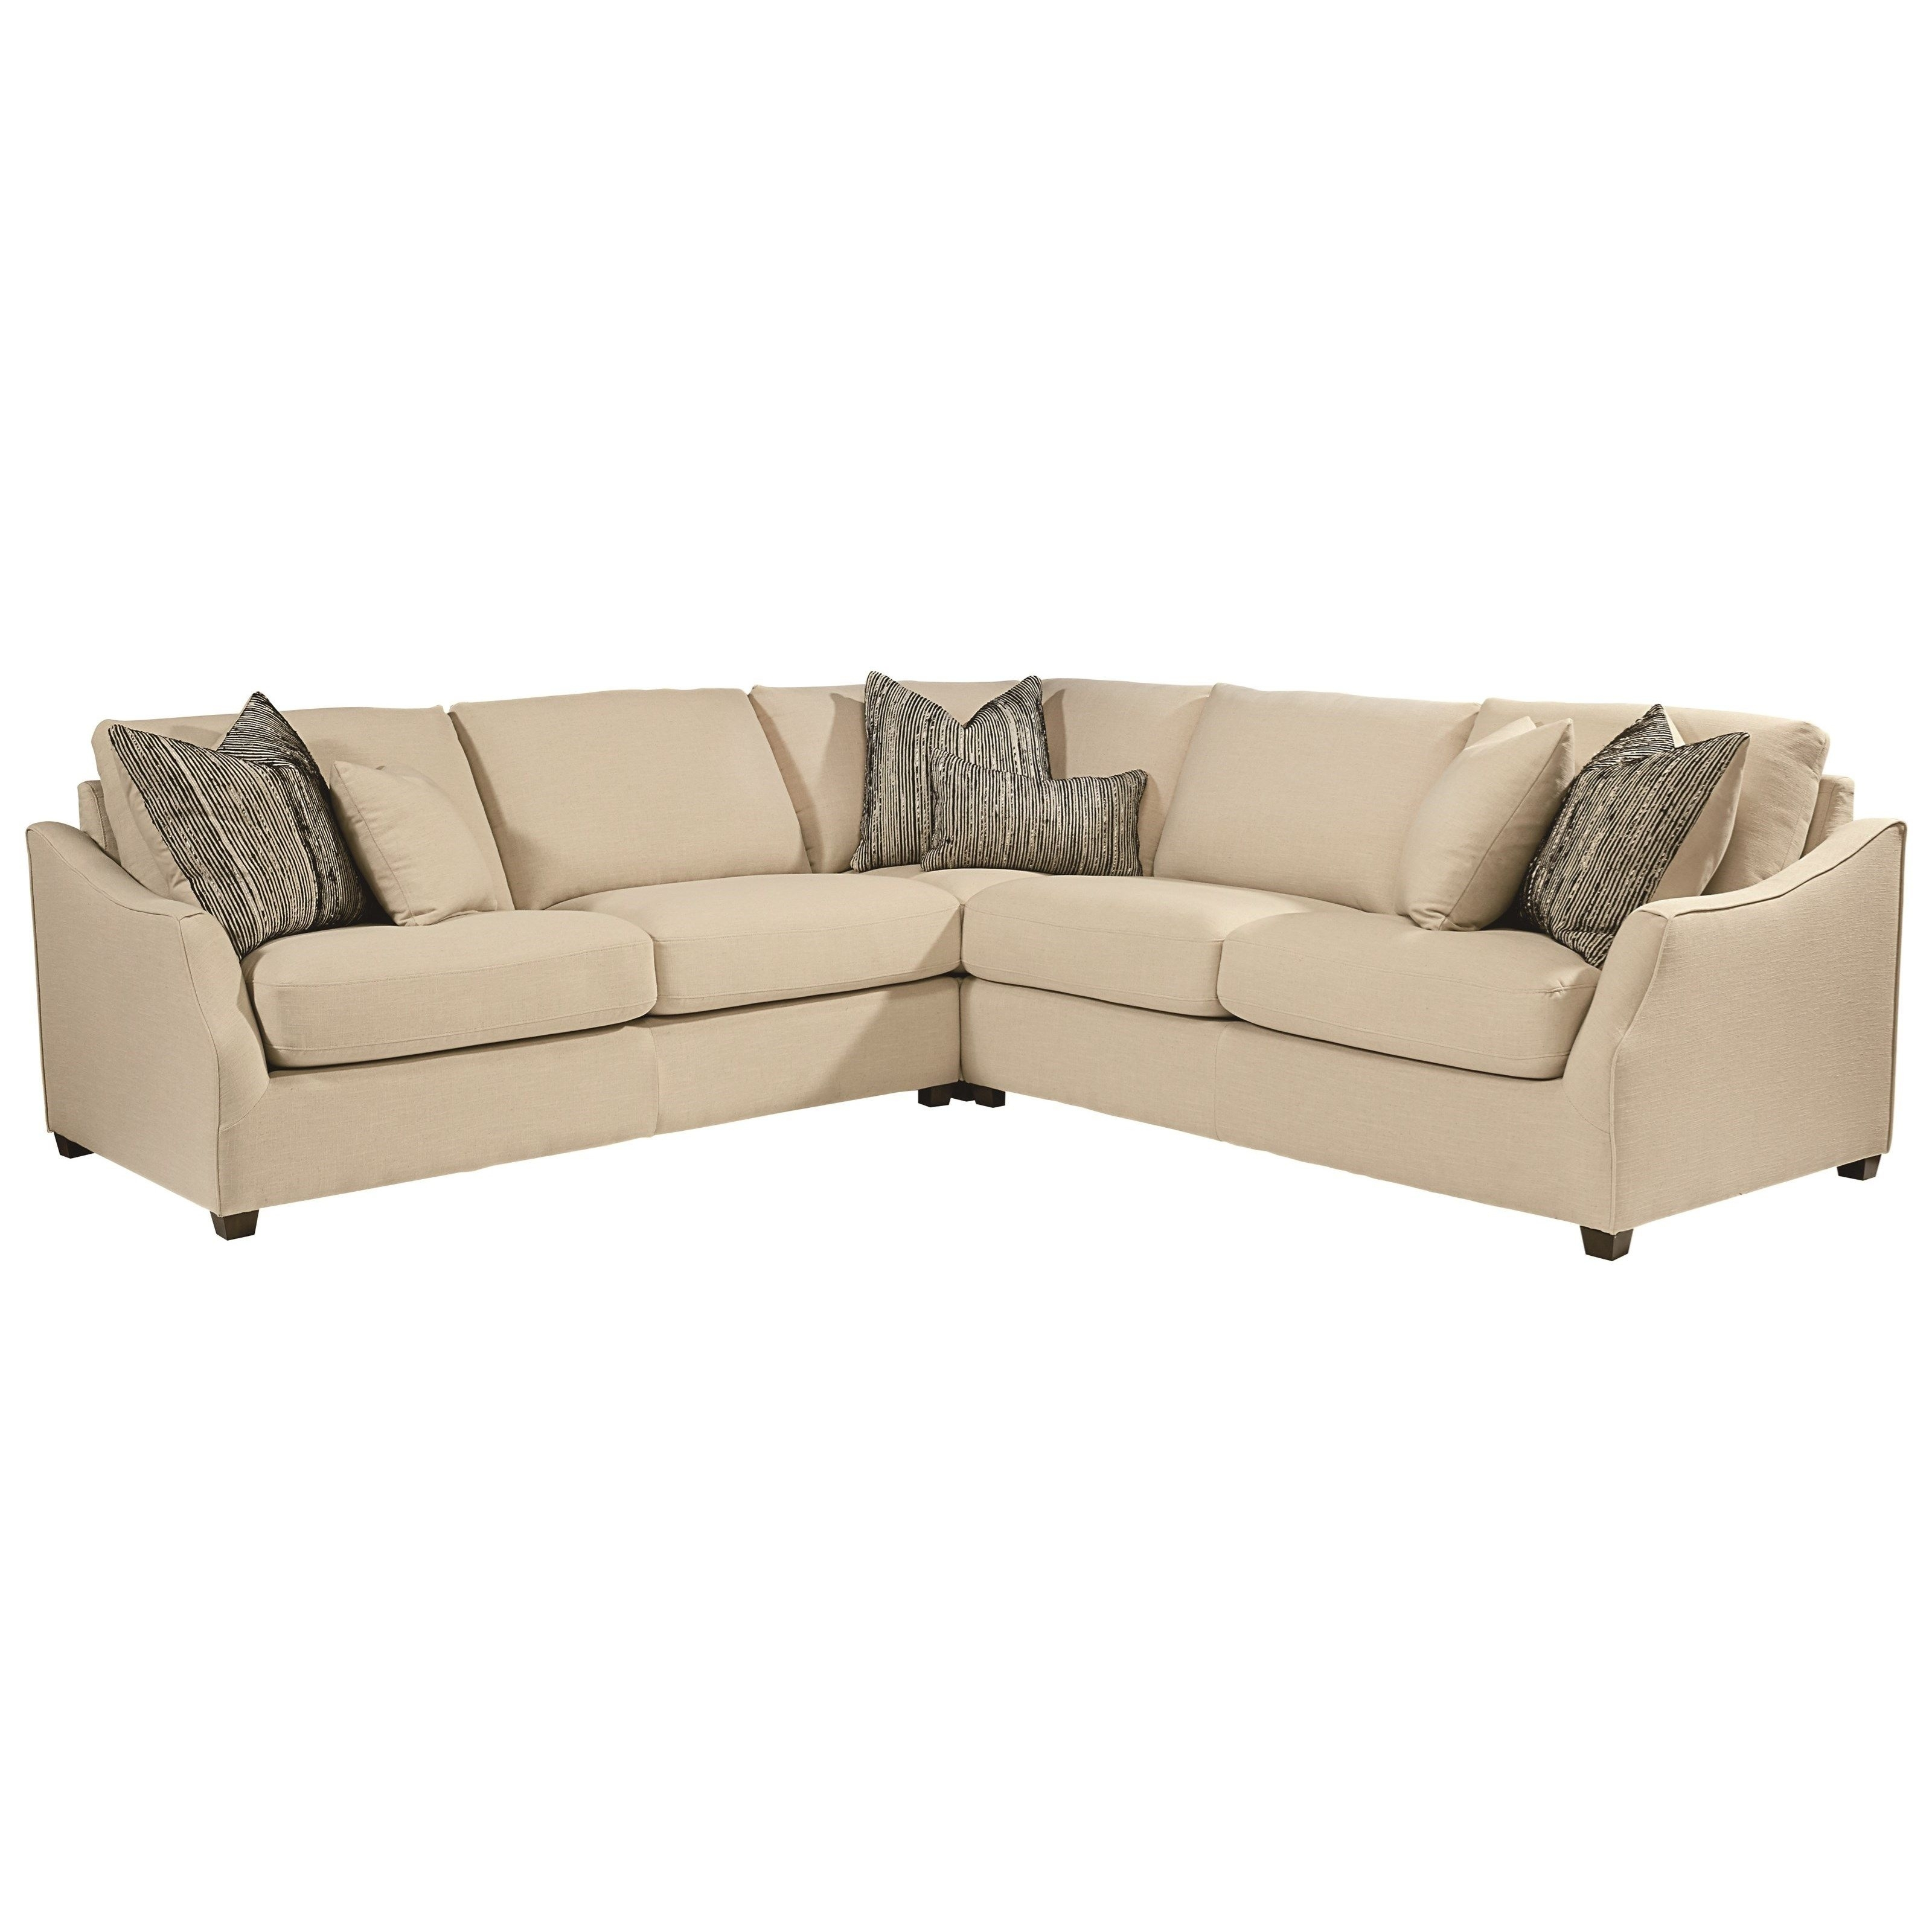 Magnolia Homejoanna Gaines Homestead Three Piece Sectional within Minneapolis Sectional Sofas (Image 1 of 10)